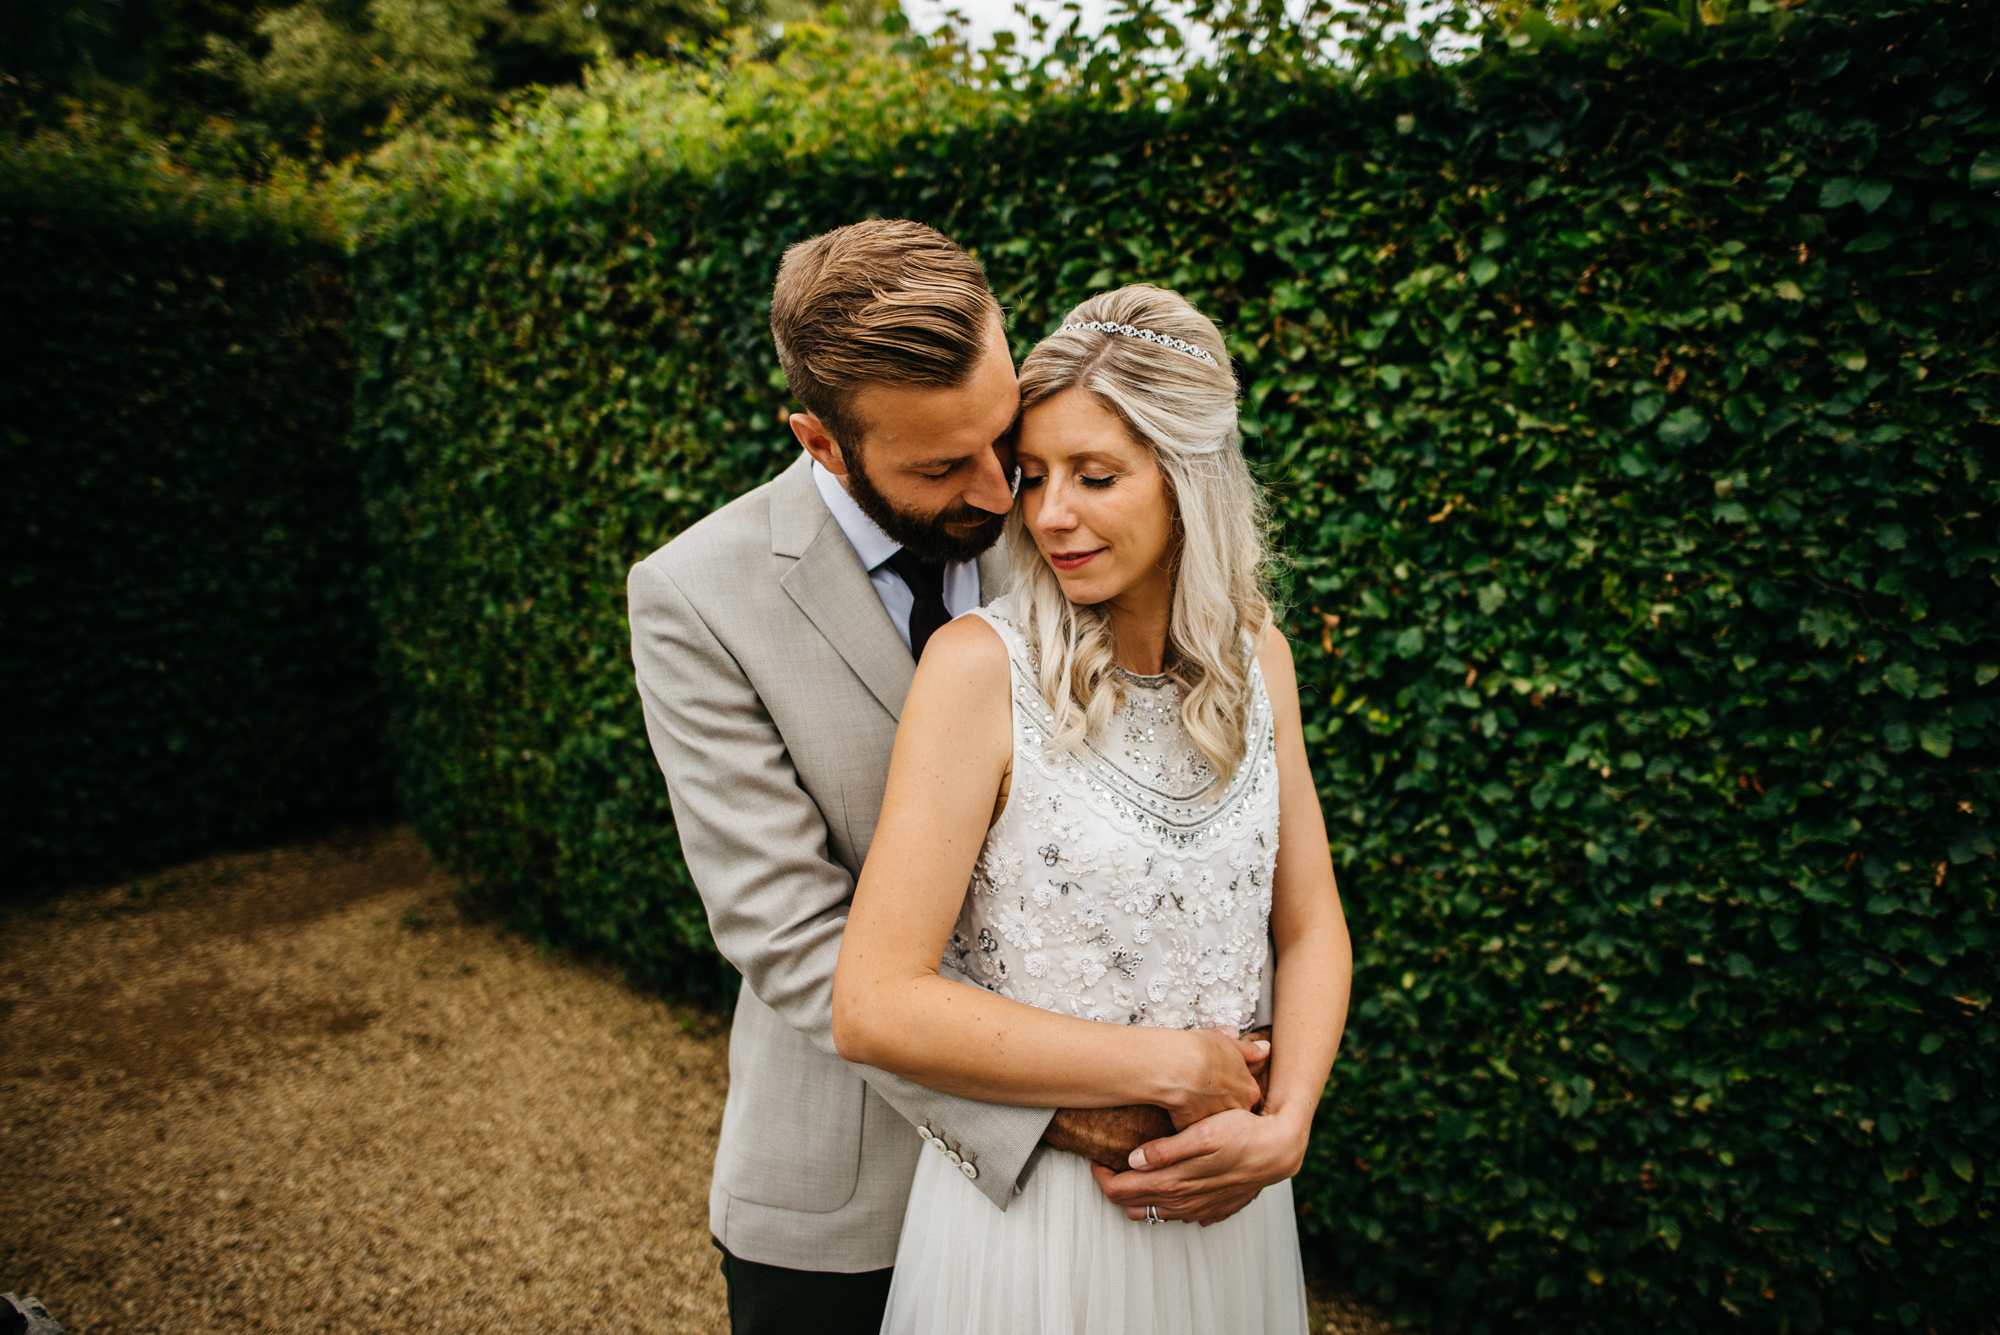 Barnsdale Gardens wedding photography - Claire and Alex